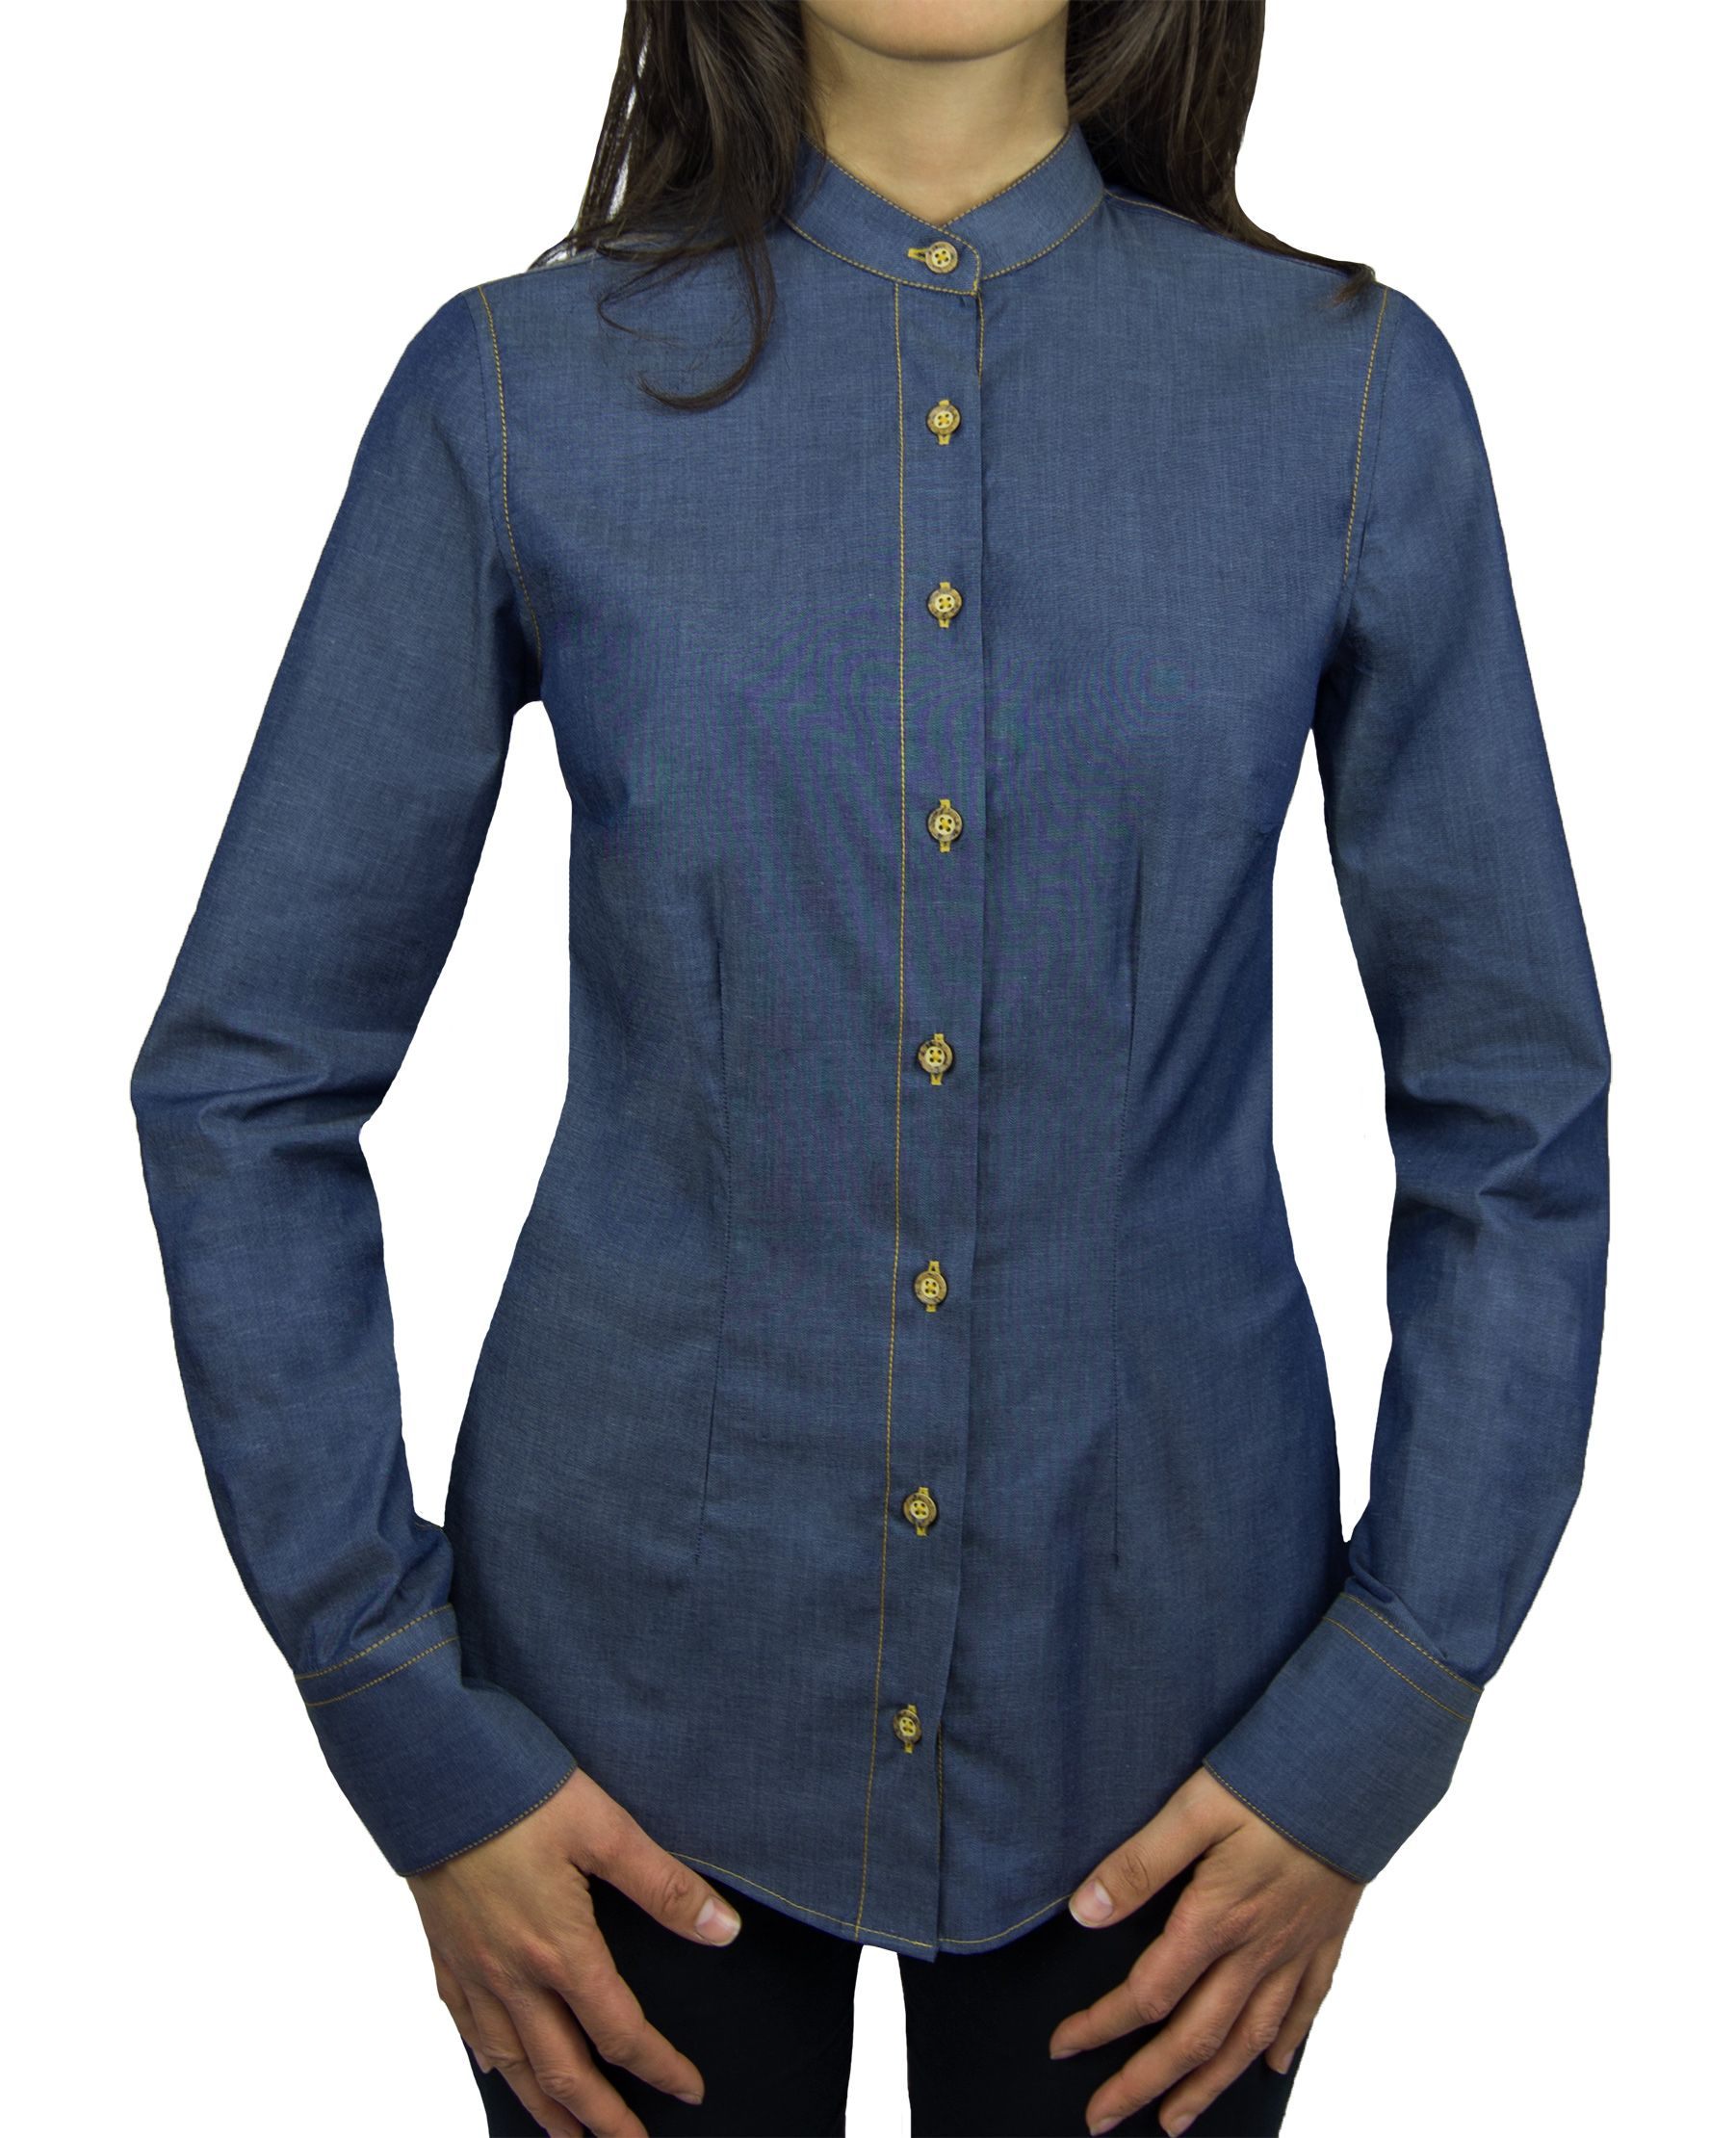 finest selection 19e3e 6f094 Camicia Denim Donna Collo Coreana. camicia coreana da donna ...